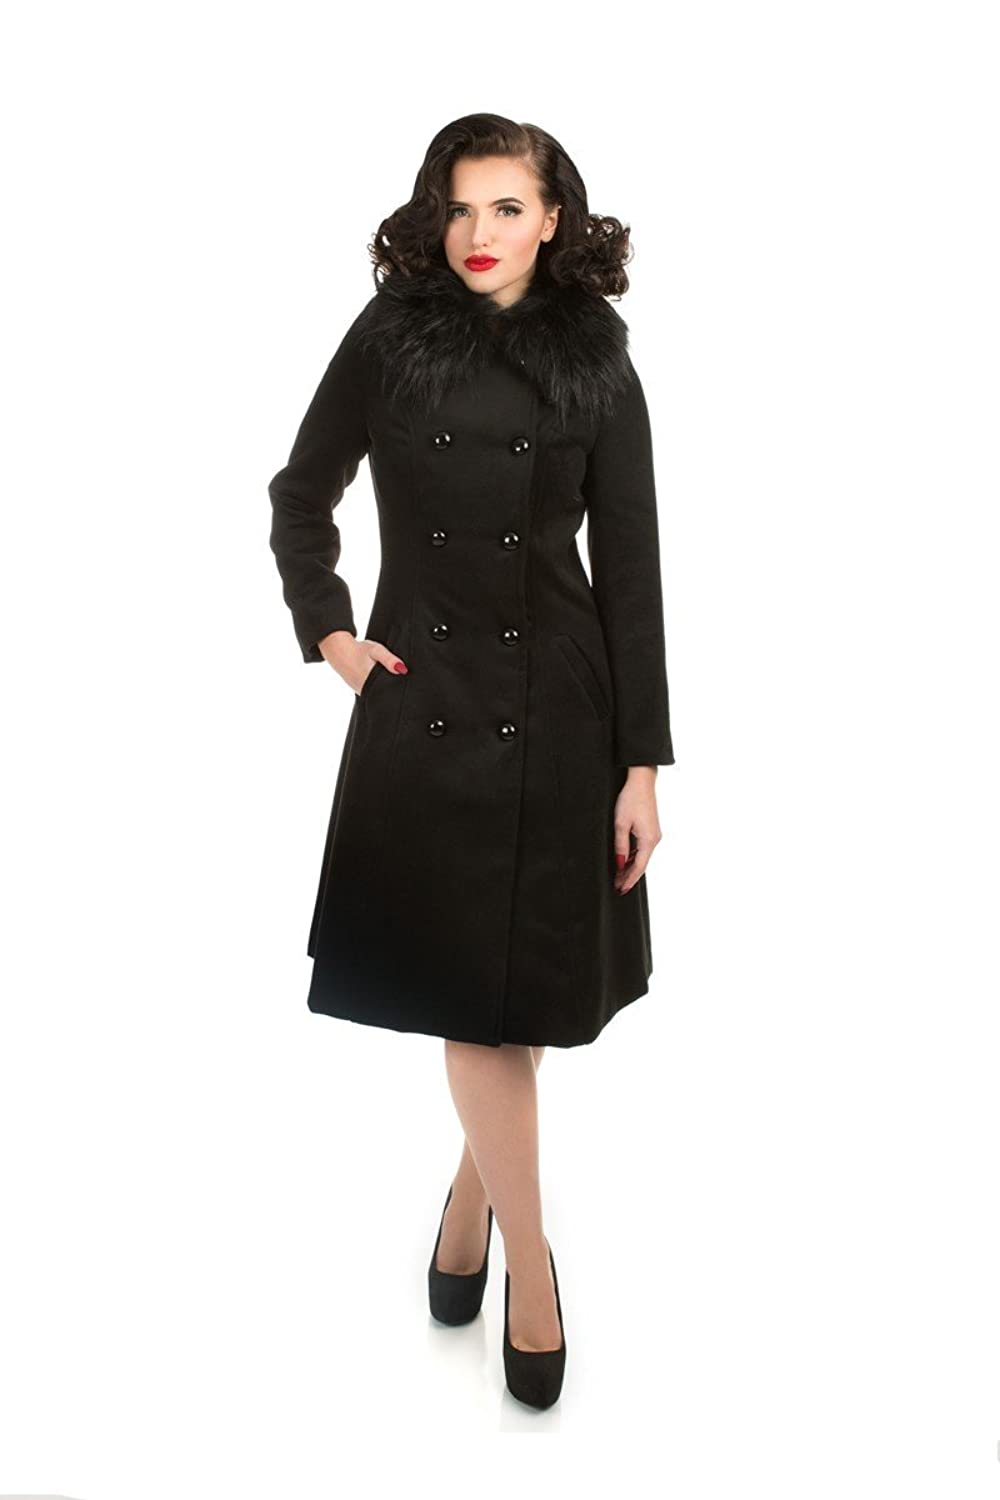 Vintage Coats & Jackets | Retro Coats and Jackets Hearts & Roses Chrissette Coat in Black (Shipped from The US US Sizes) $64.88 AT vintagedancer.com